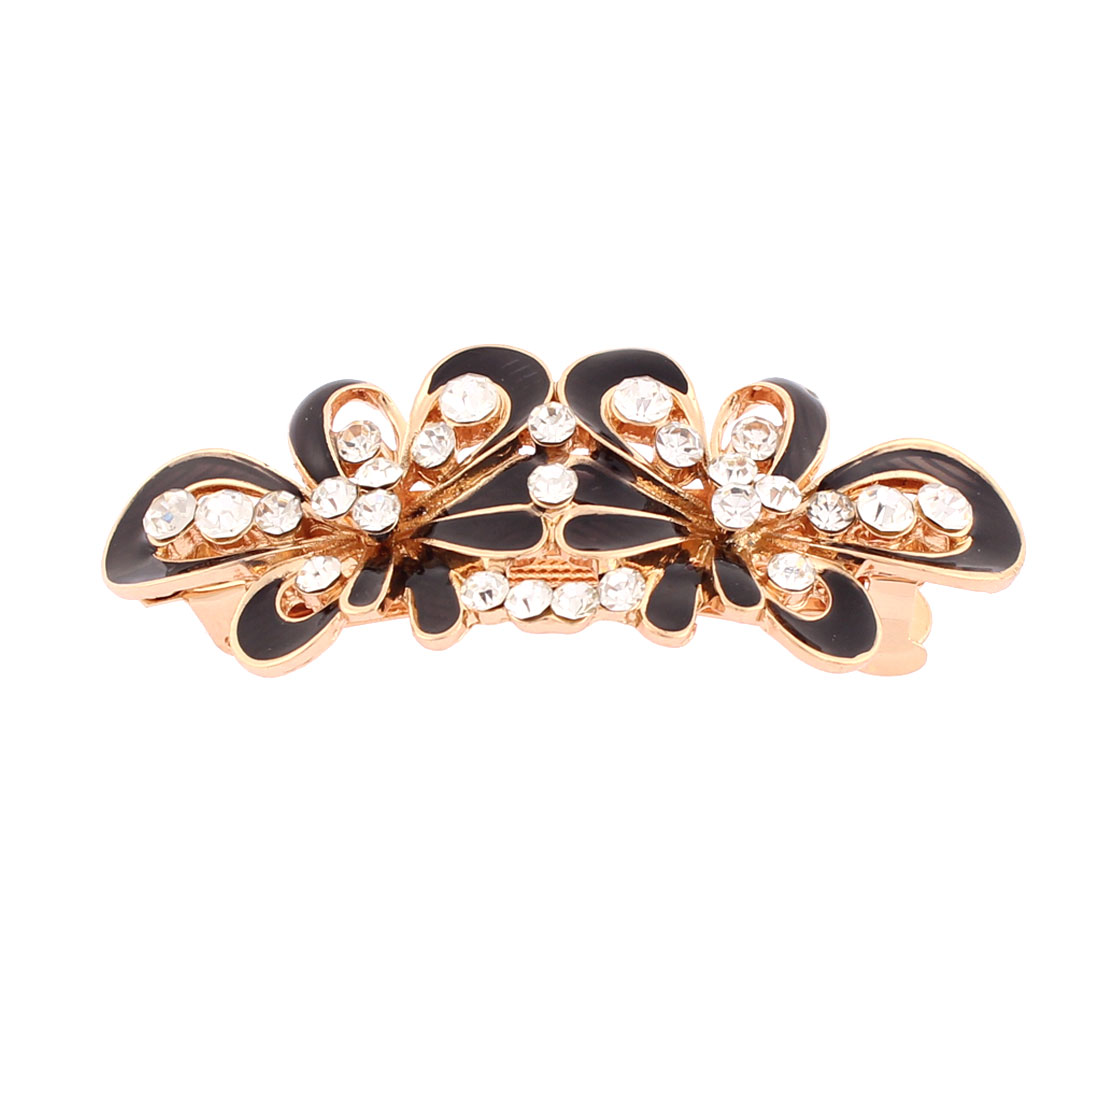 Women Plastic Rhinestone Inlaid Flower Design French Barrette Style Metal Hair Clip Hairpin Gold Tone Black